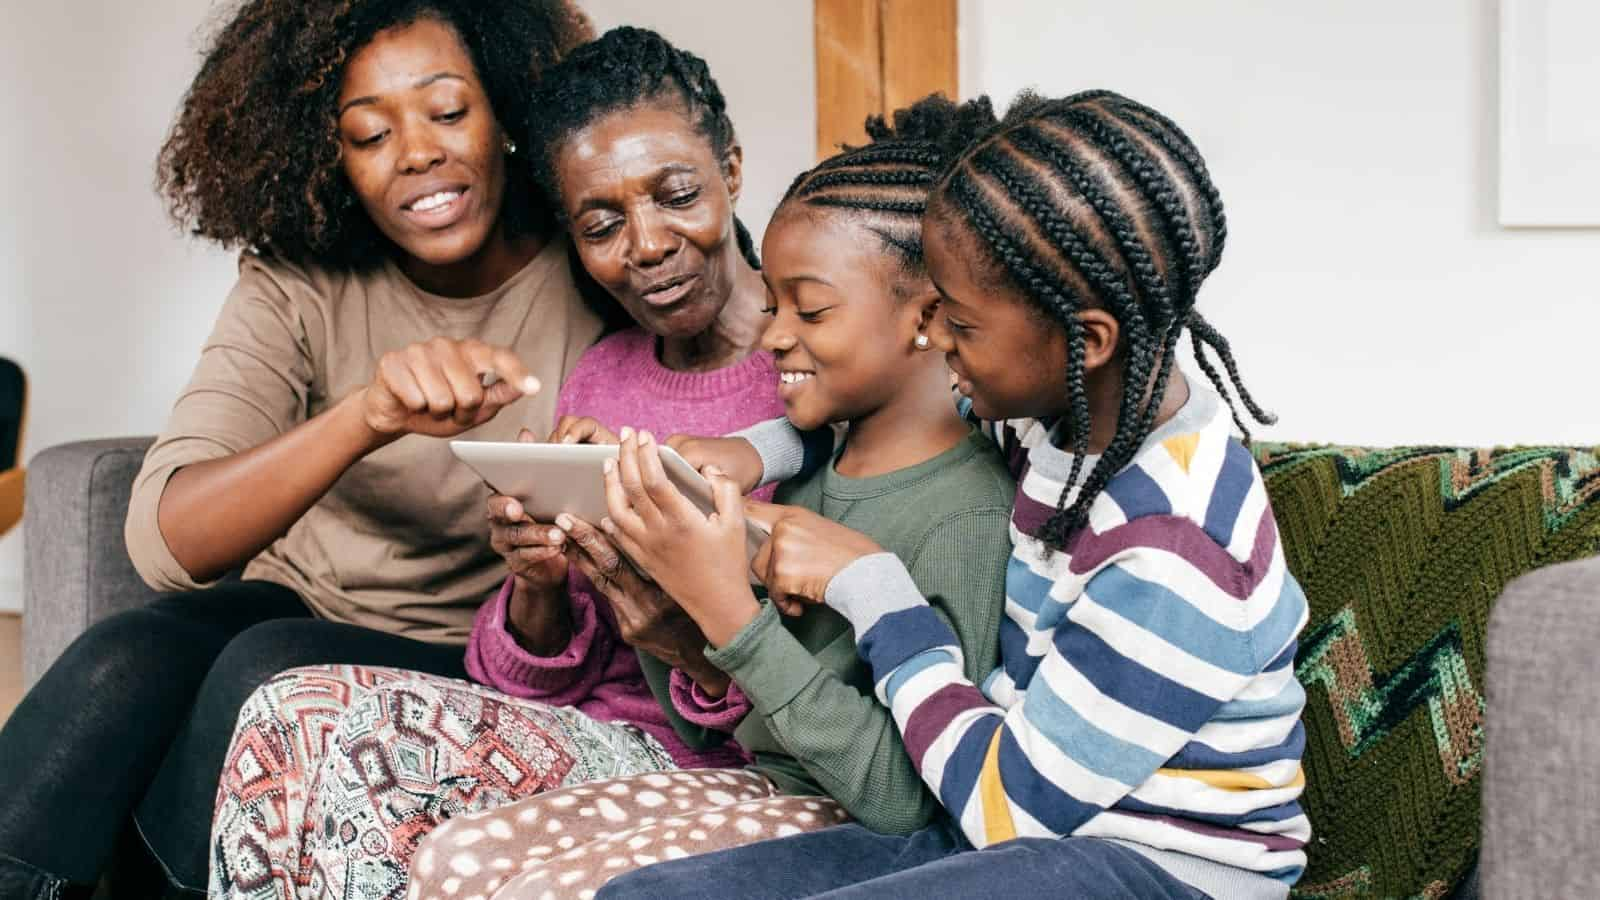 How To Speak To Your Child About the Bark Parental Control App